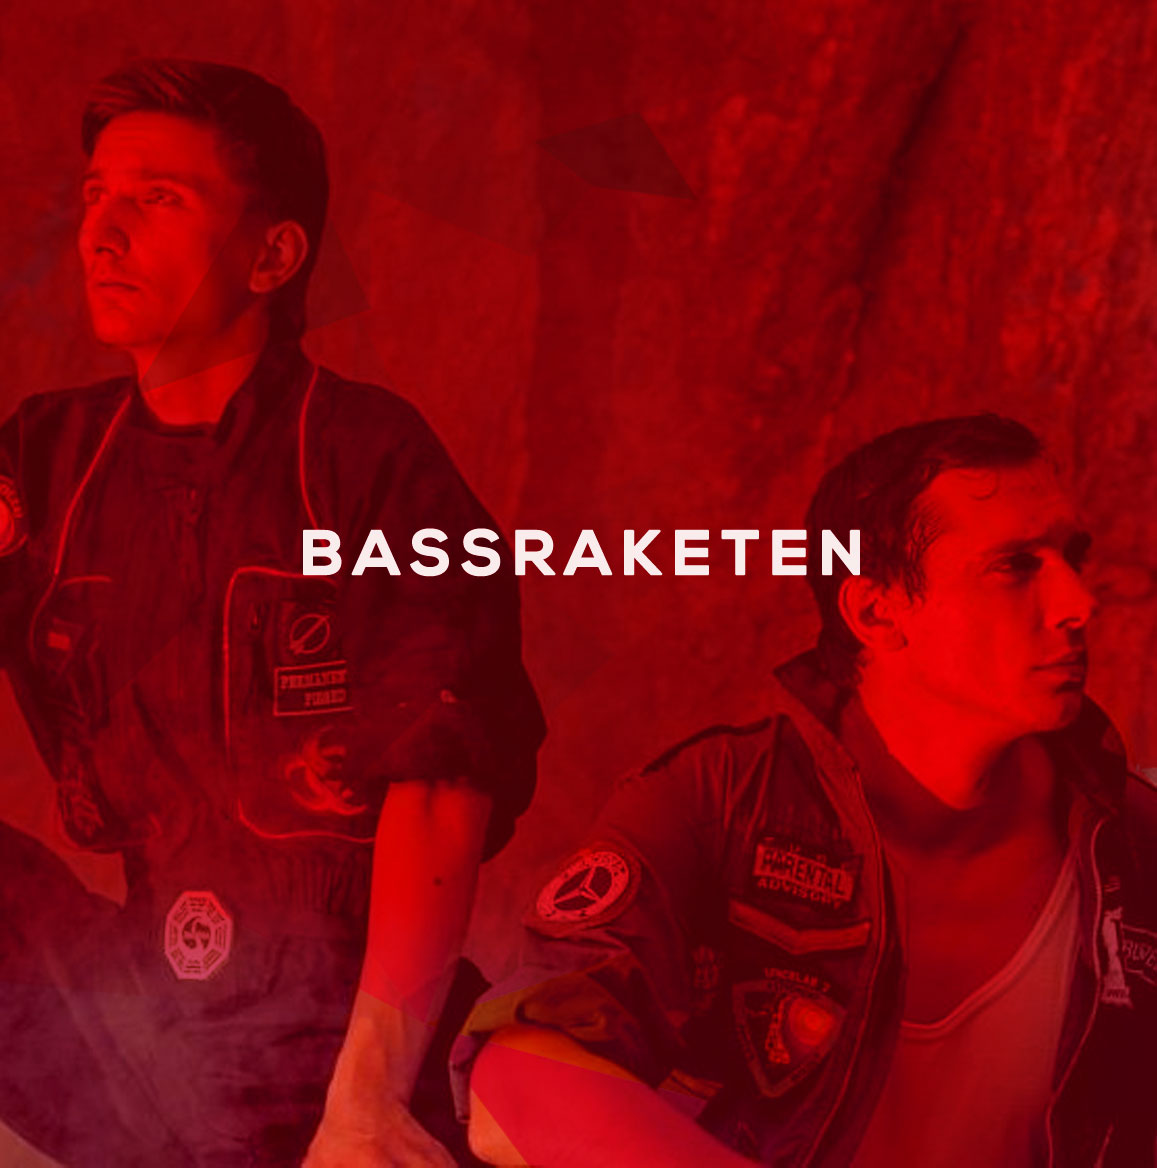 HP-Act-bassraketen